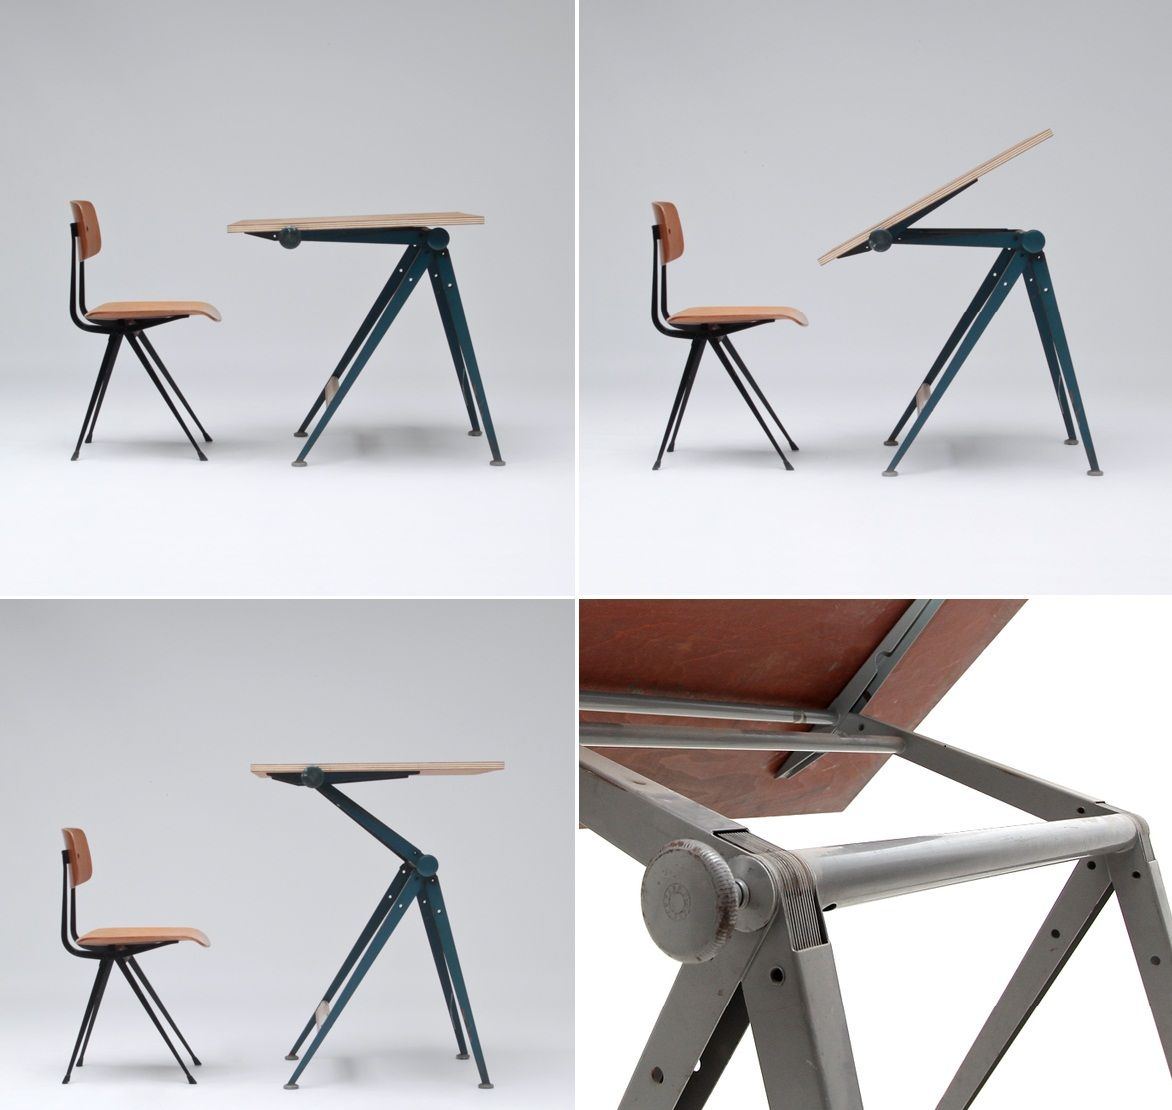 Drafting table dimensions -  Reply Drafting Table Designed By Friso Kramer And Wim Rietveld For The Dutch Manufacturer